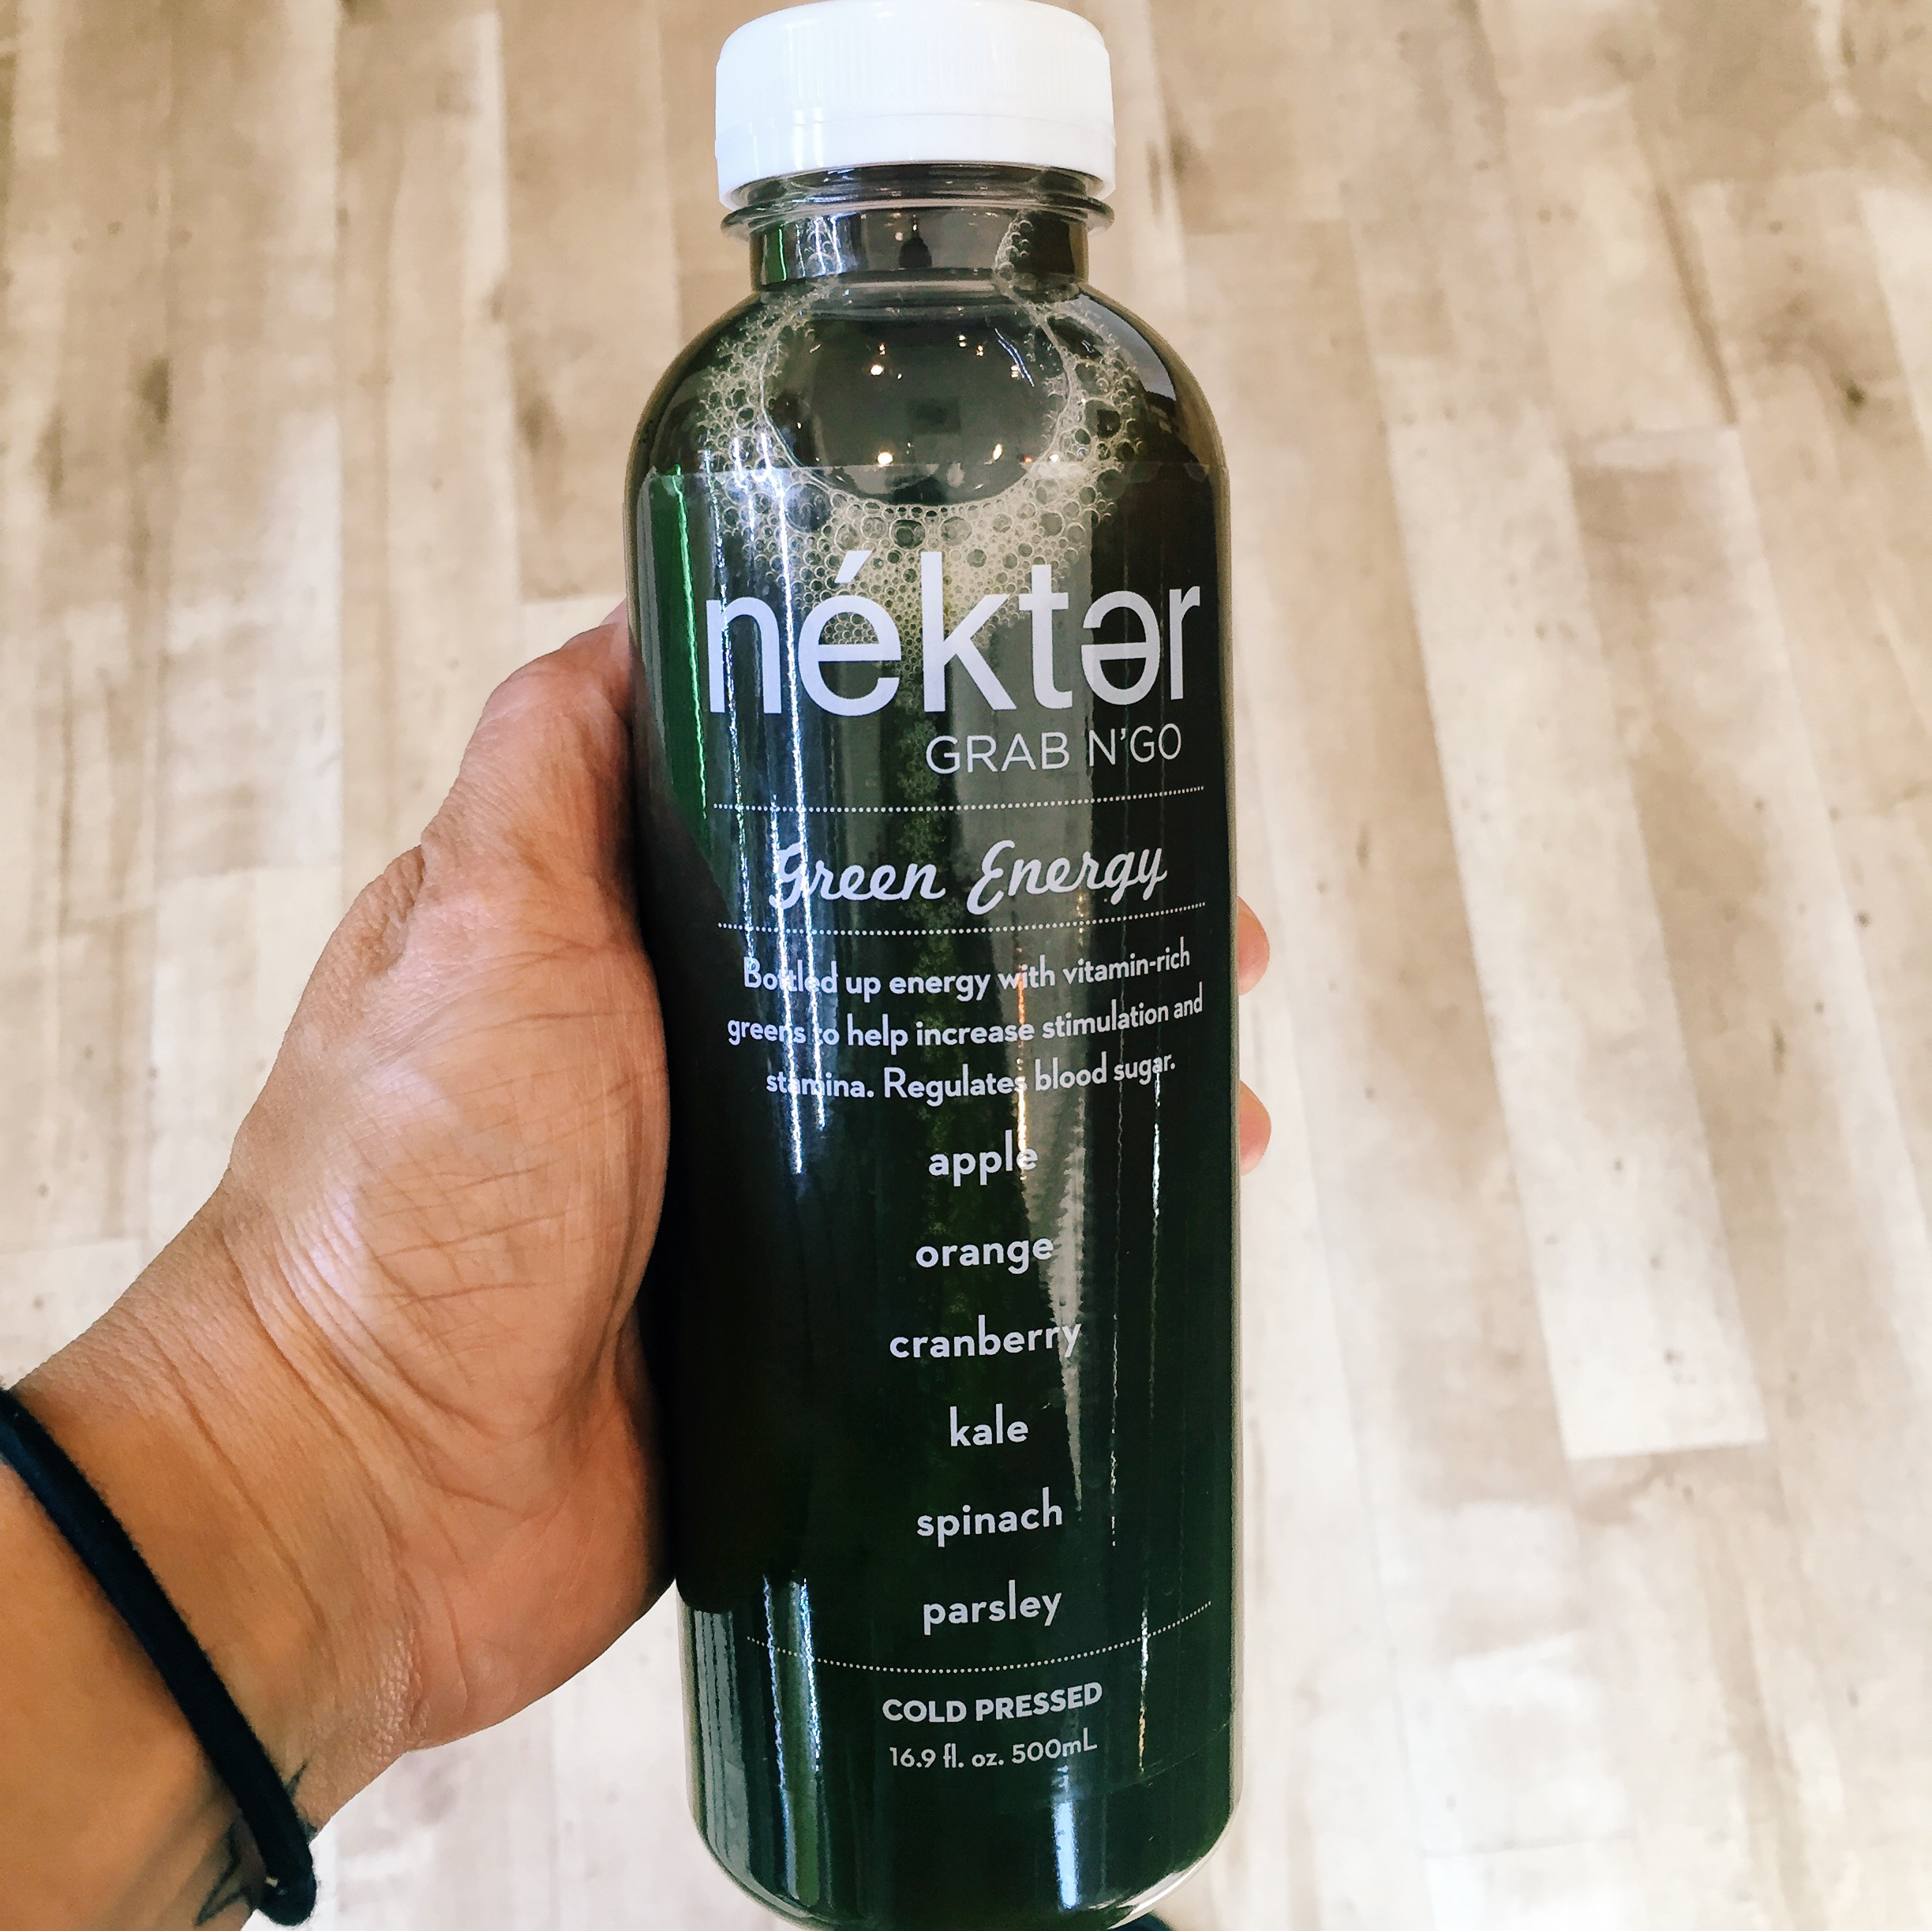 Afternoon pick me up: green energy juice.